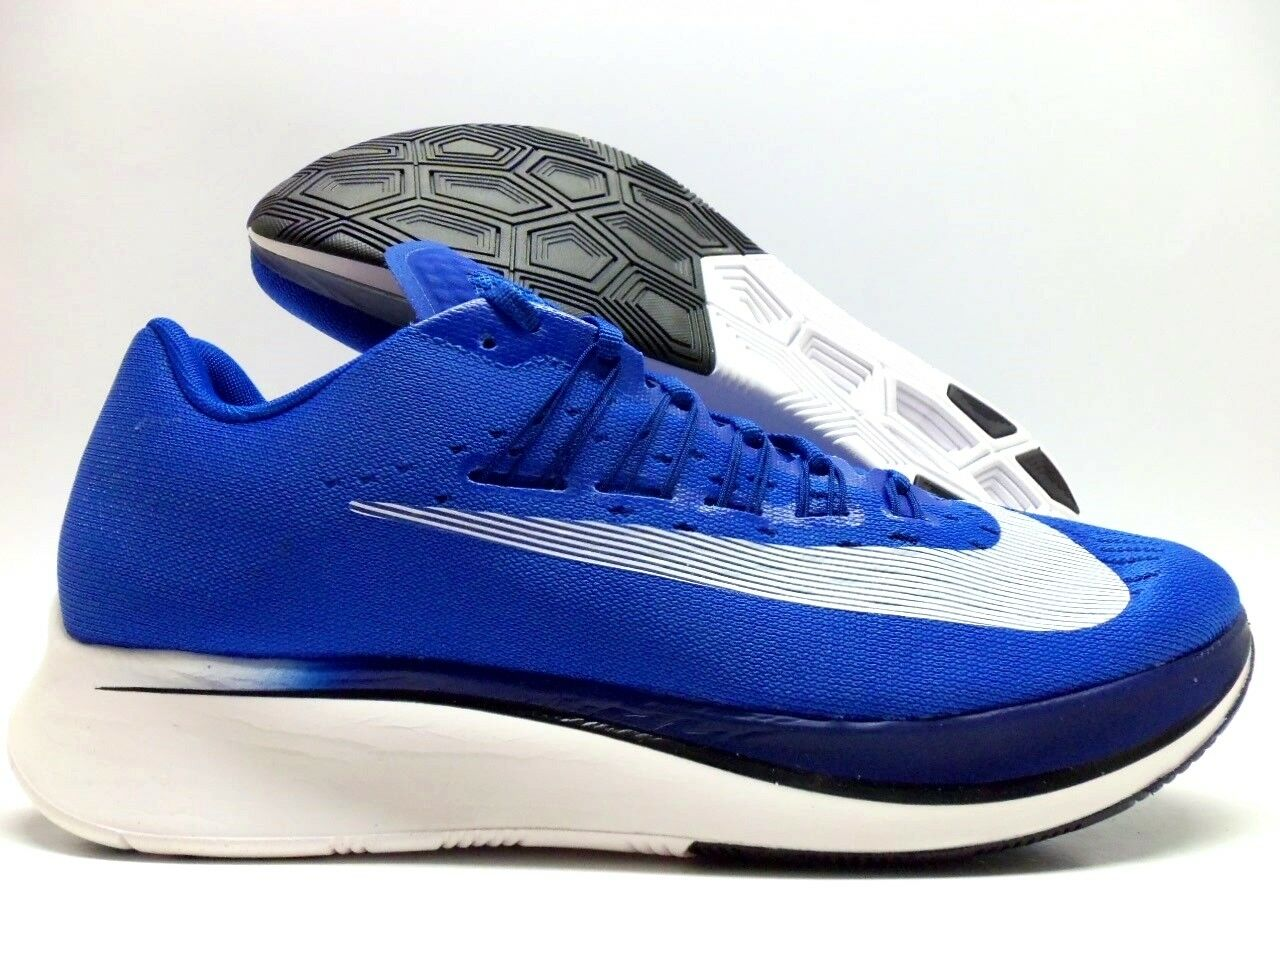 NIKE ZOOM FLY HYPER ROYAL WHITE SIZE MEN'S 9 [880848-411]